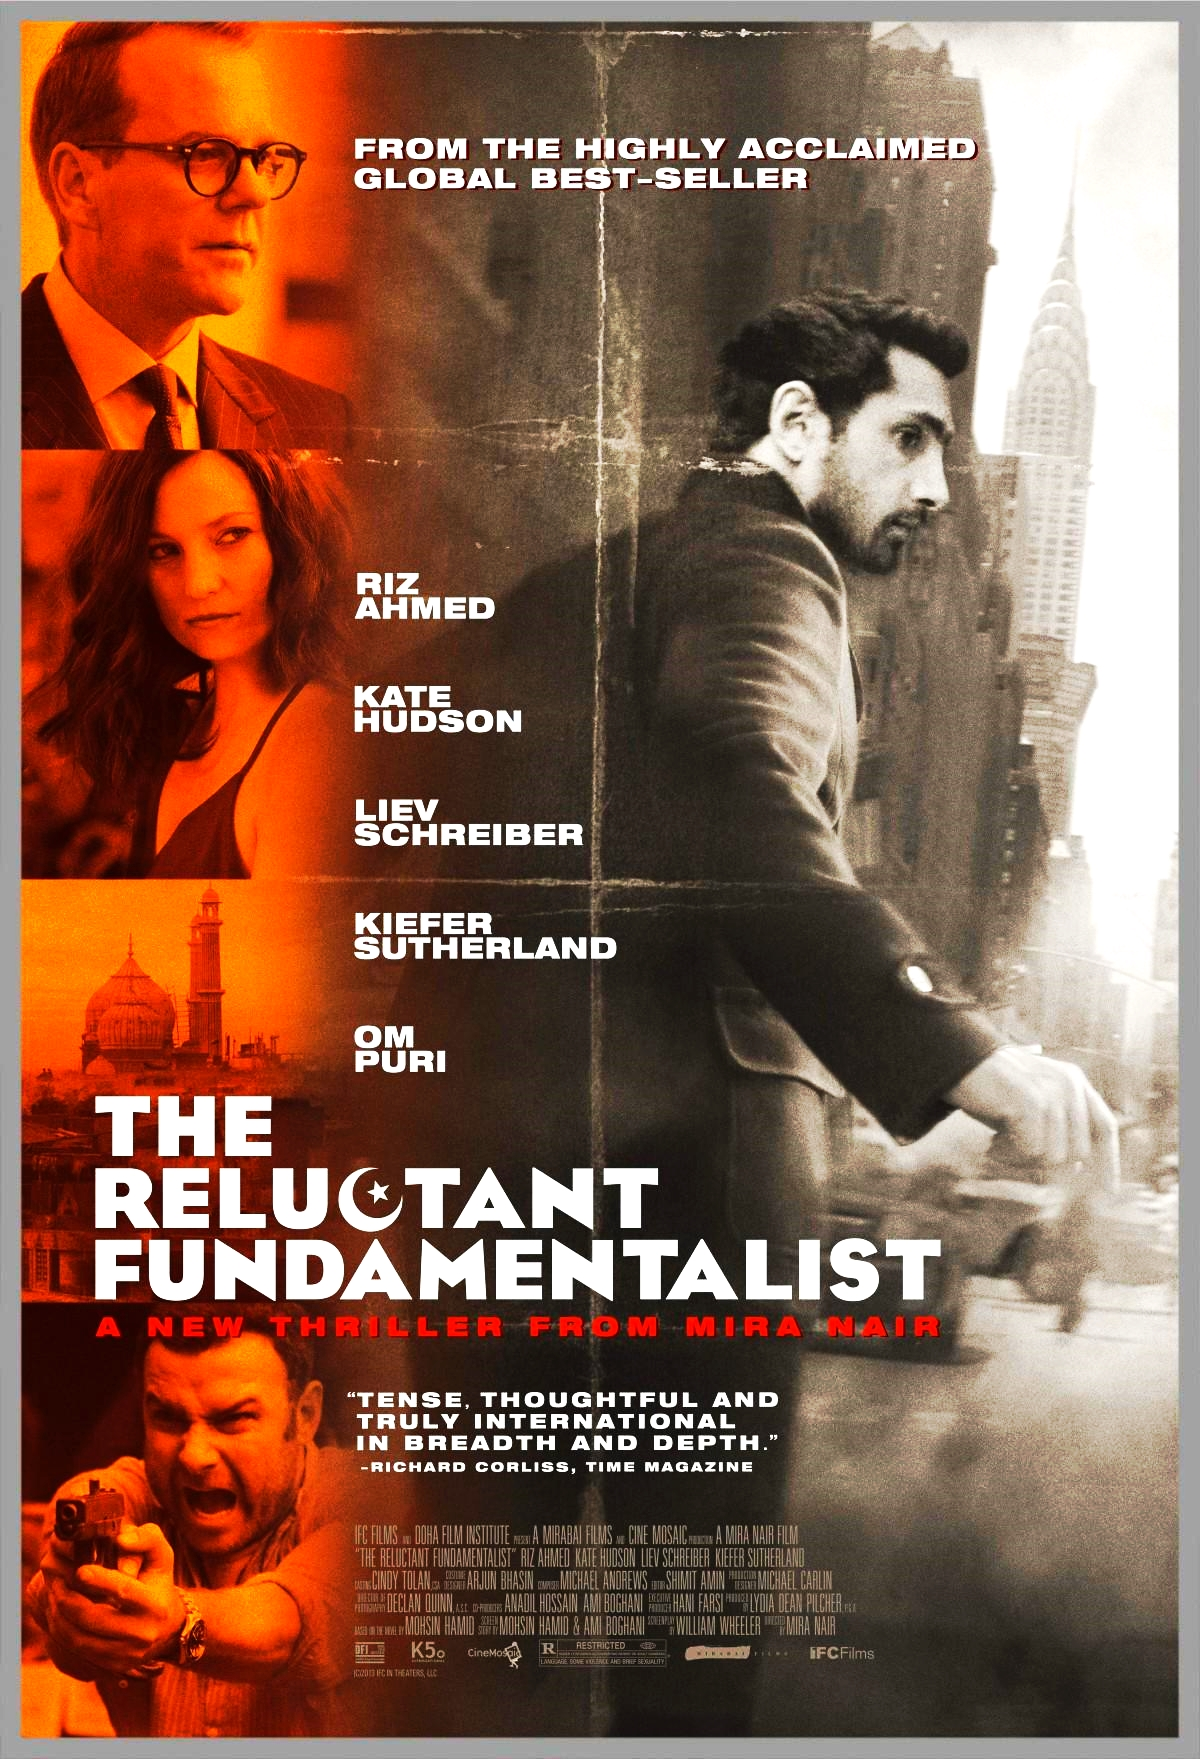 1954440484-the-reluctant-fundamentalist-poster_2129591303.jpg